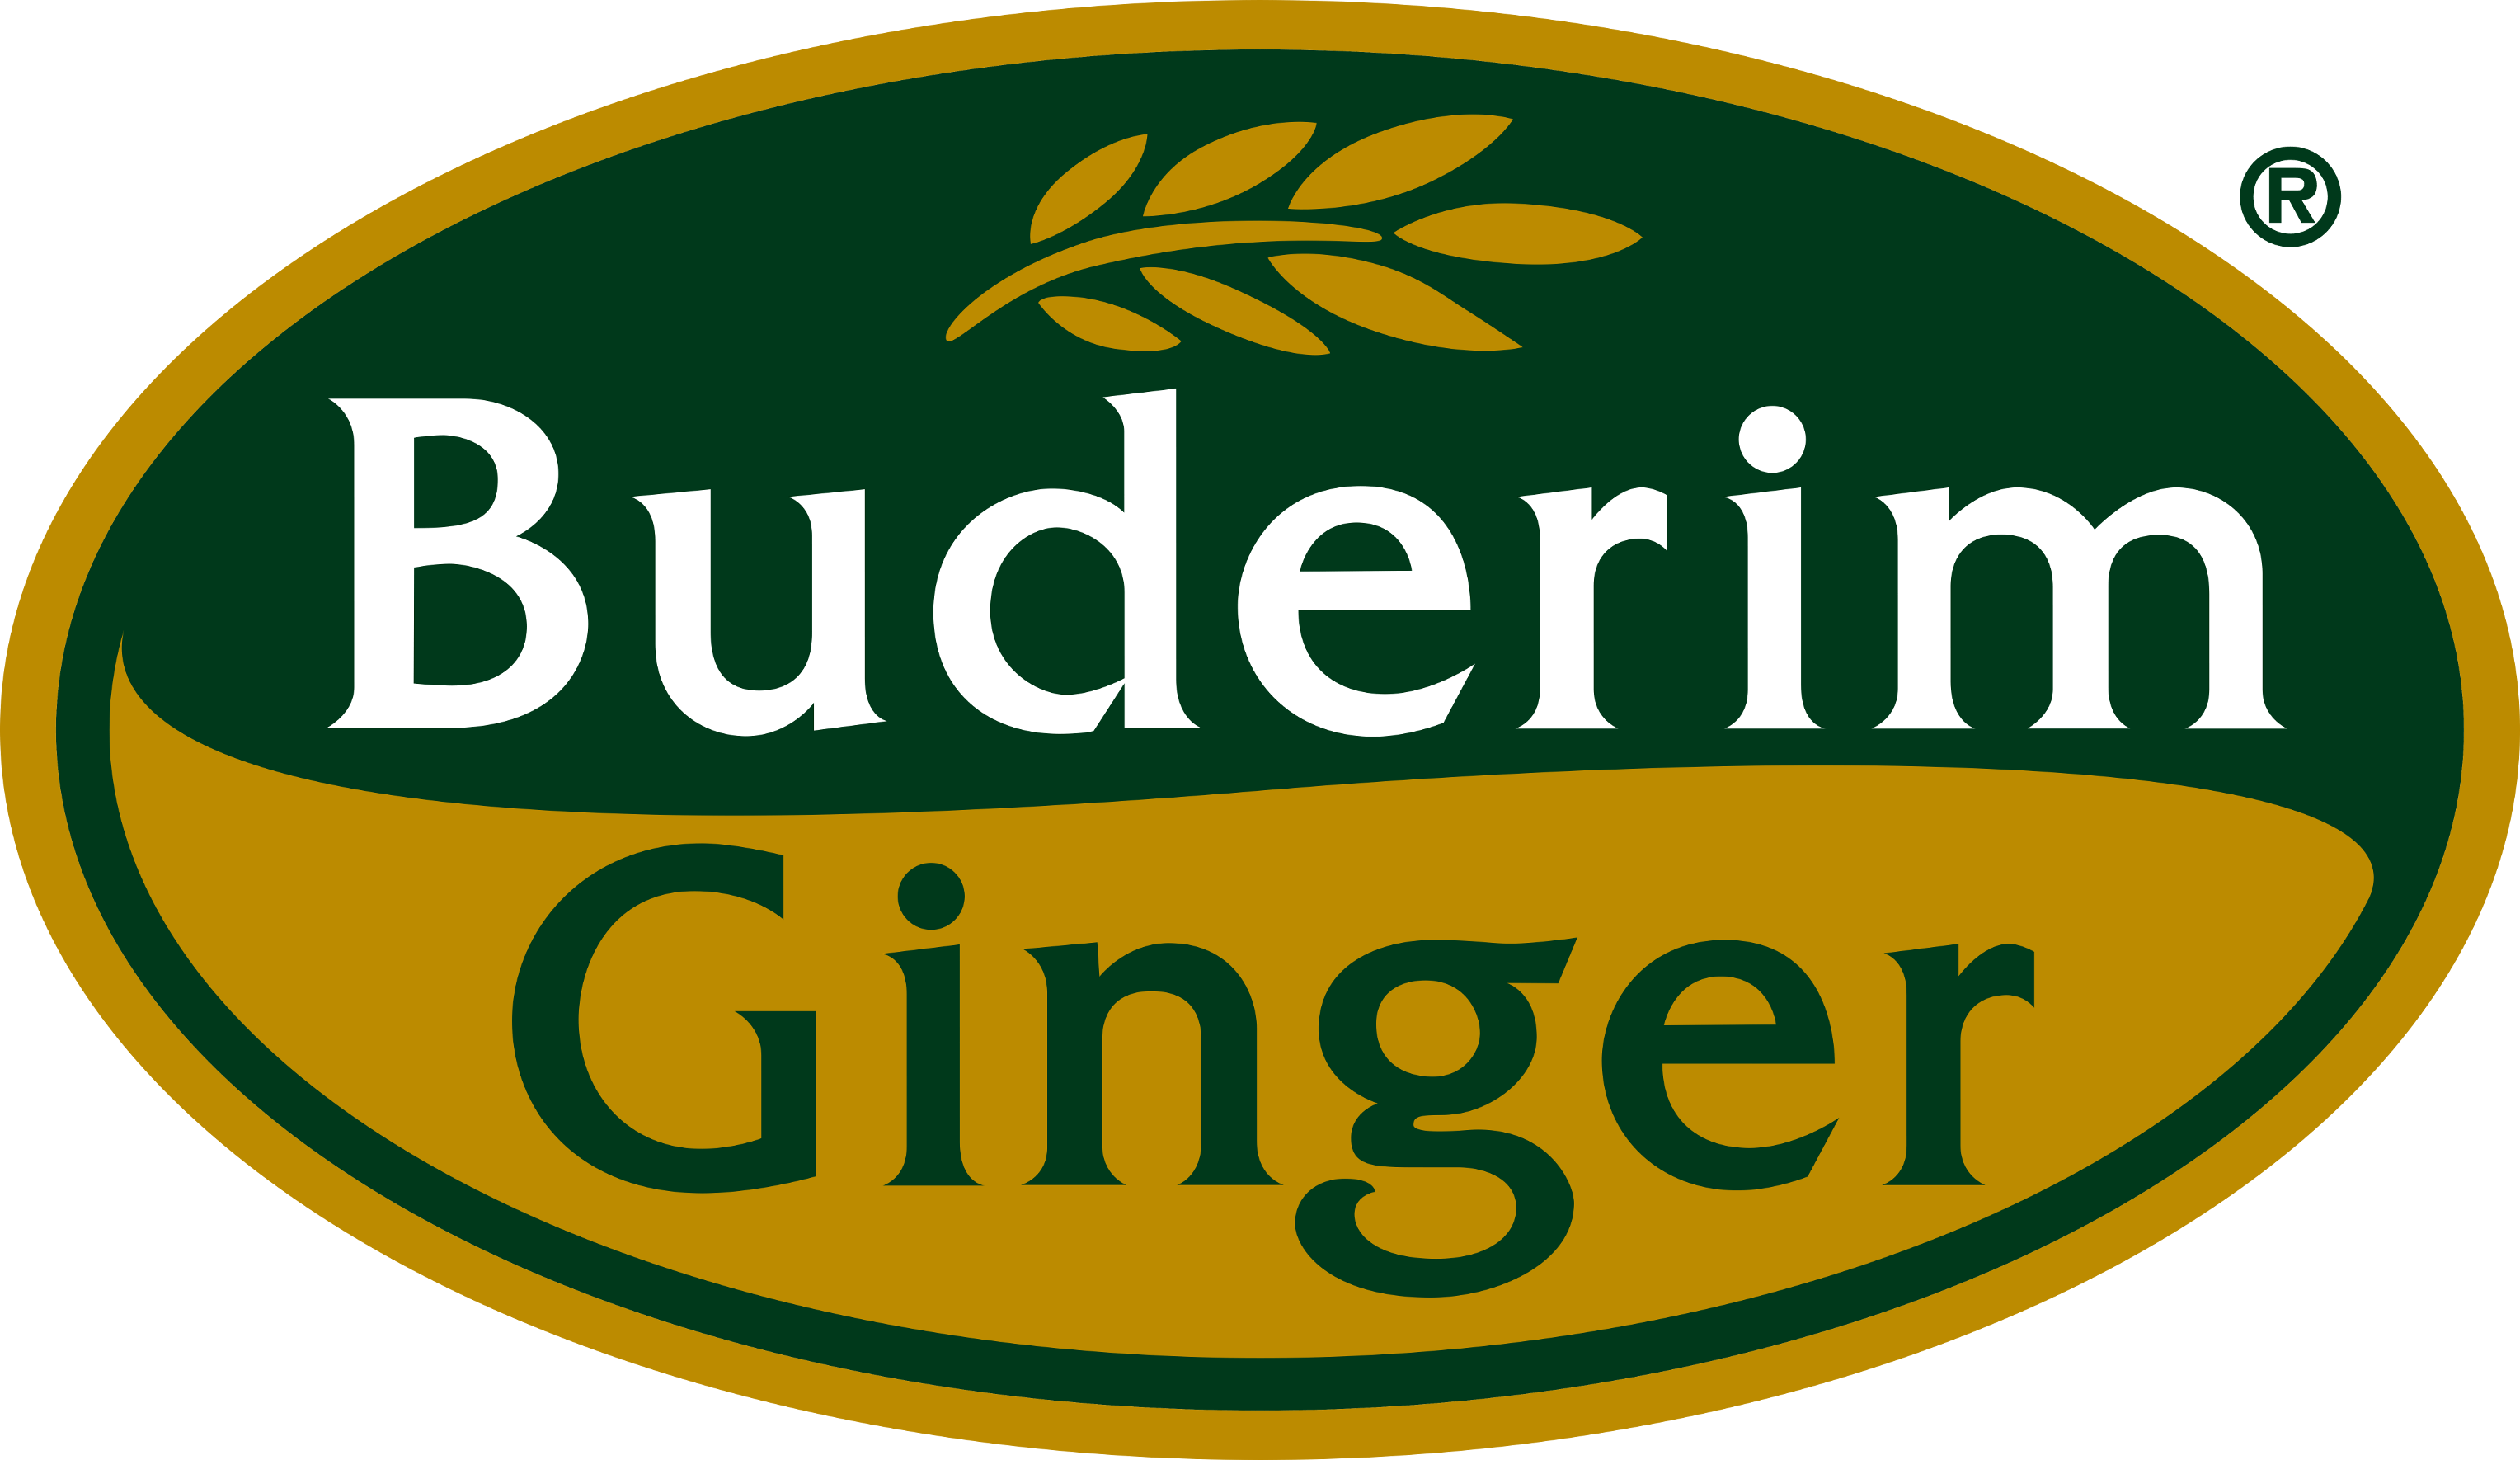 Buderim Ginger Europe